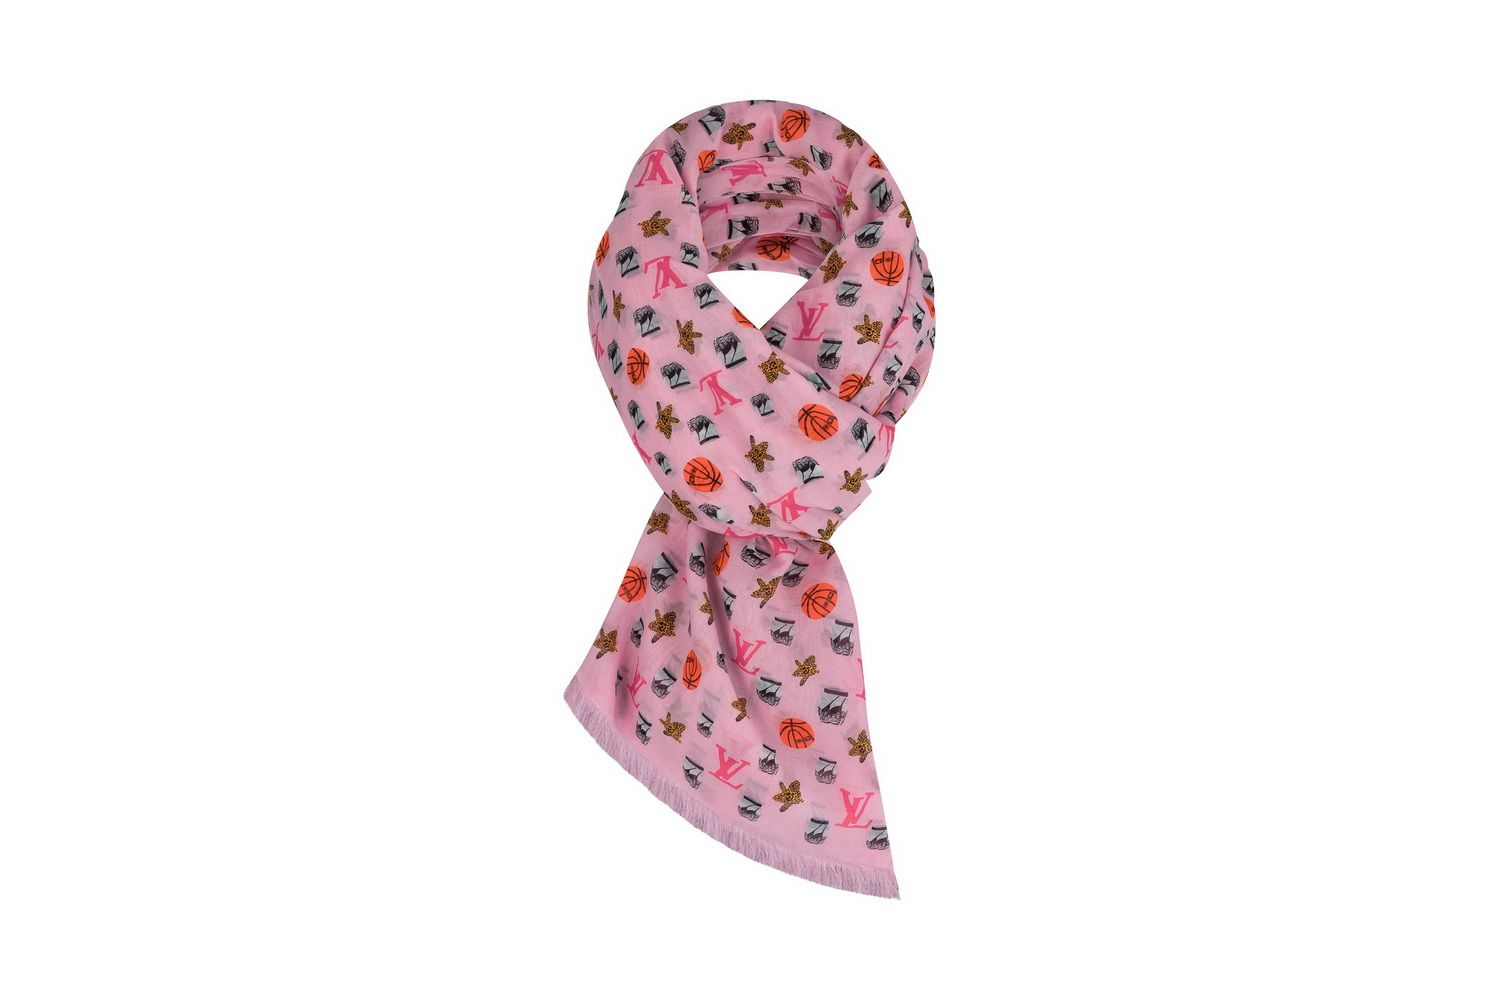 LOUIS VUITTON X JONAS WOOD MONOGRAM STOLE PINK_resize